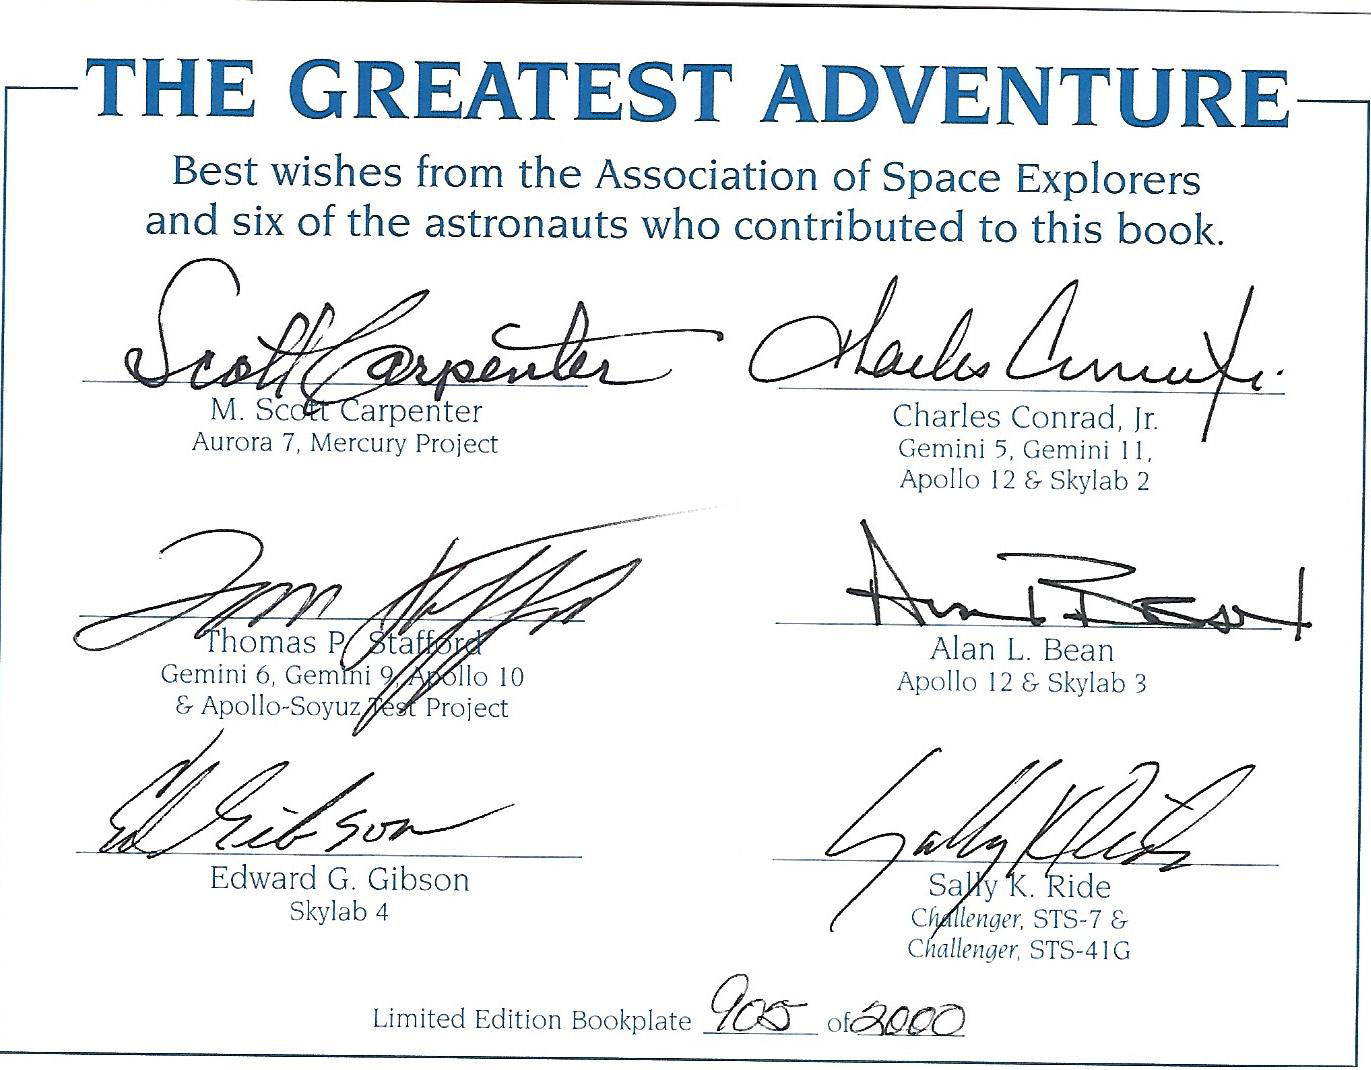 fs ase astronaut signed bookplates collectspace messages